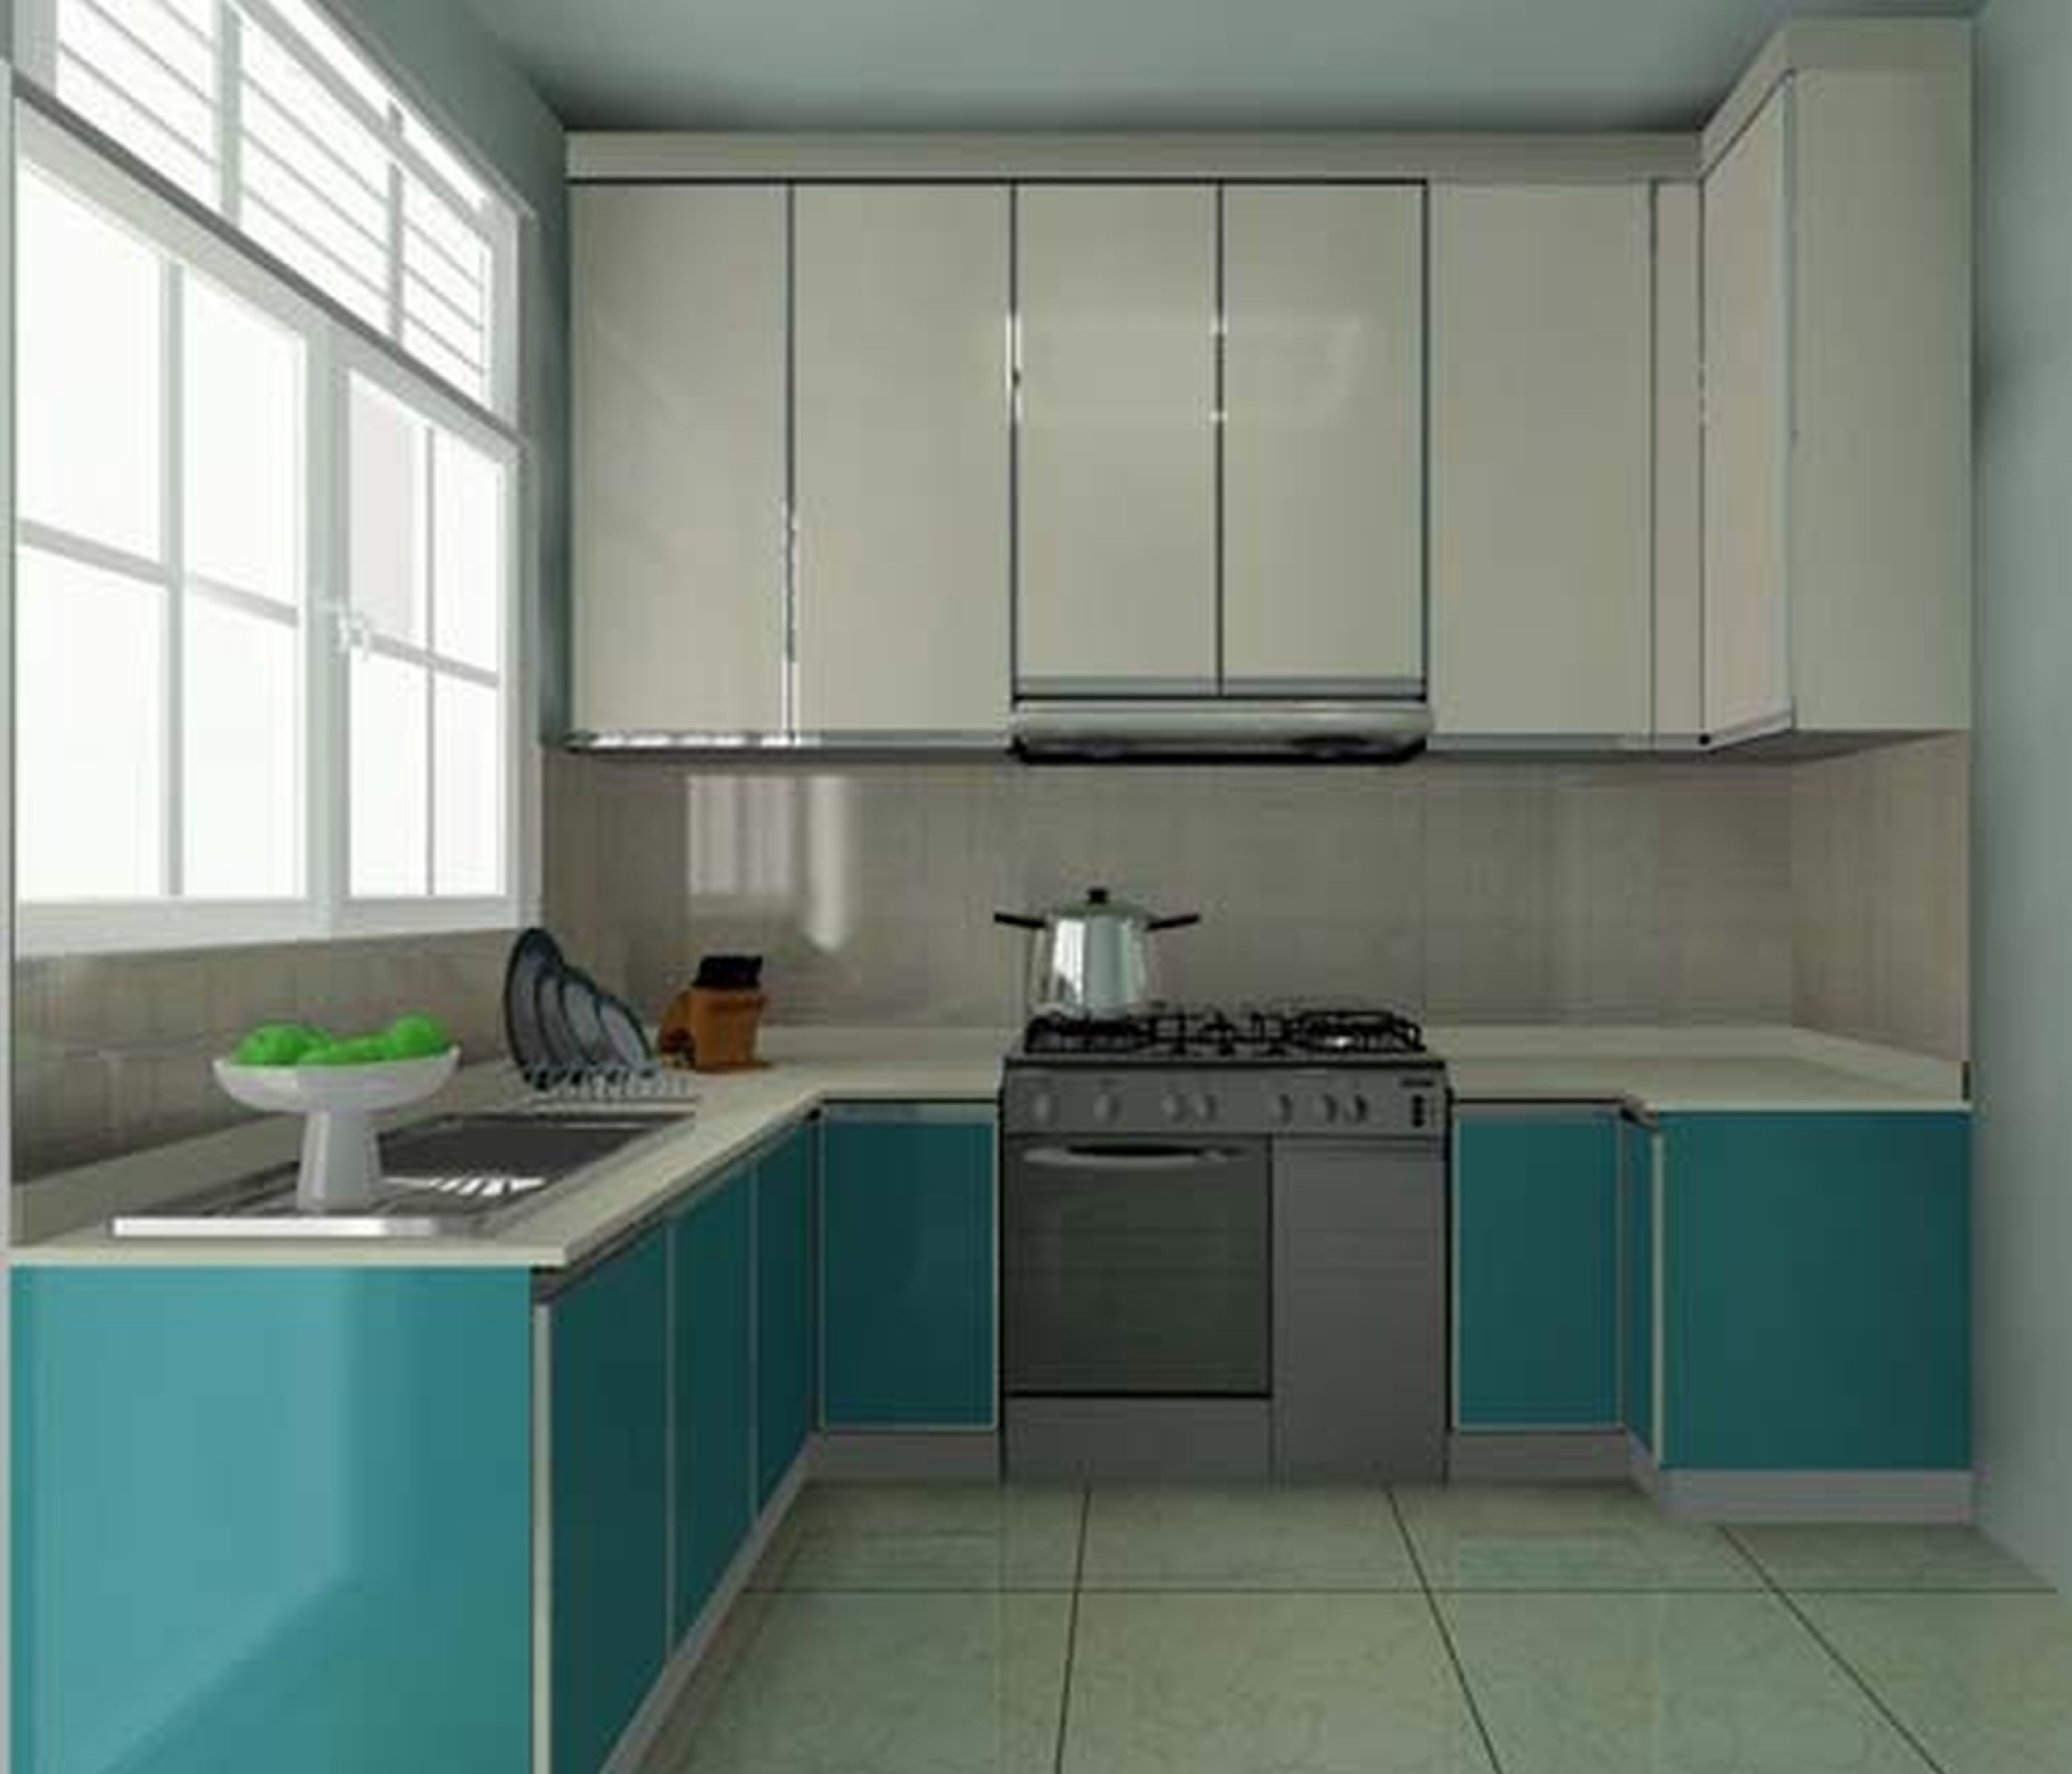 Permalink to Modern Kitchen Cabinets Design For Small Space